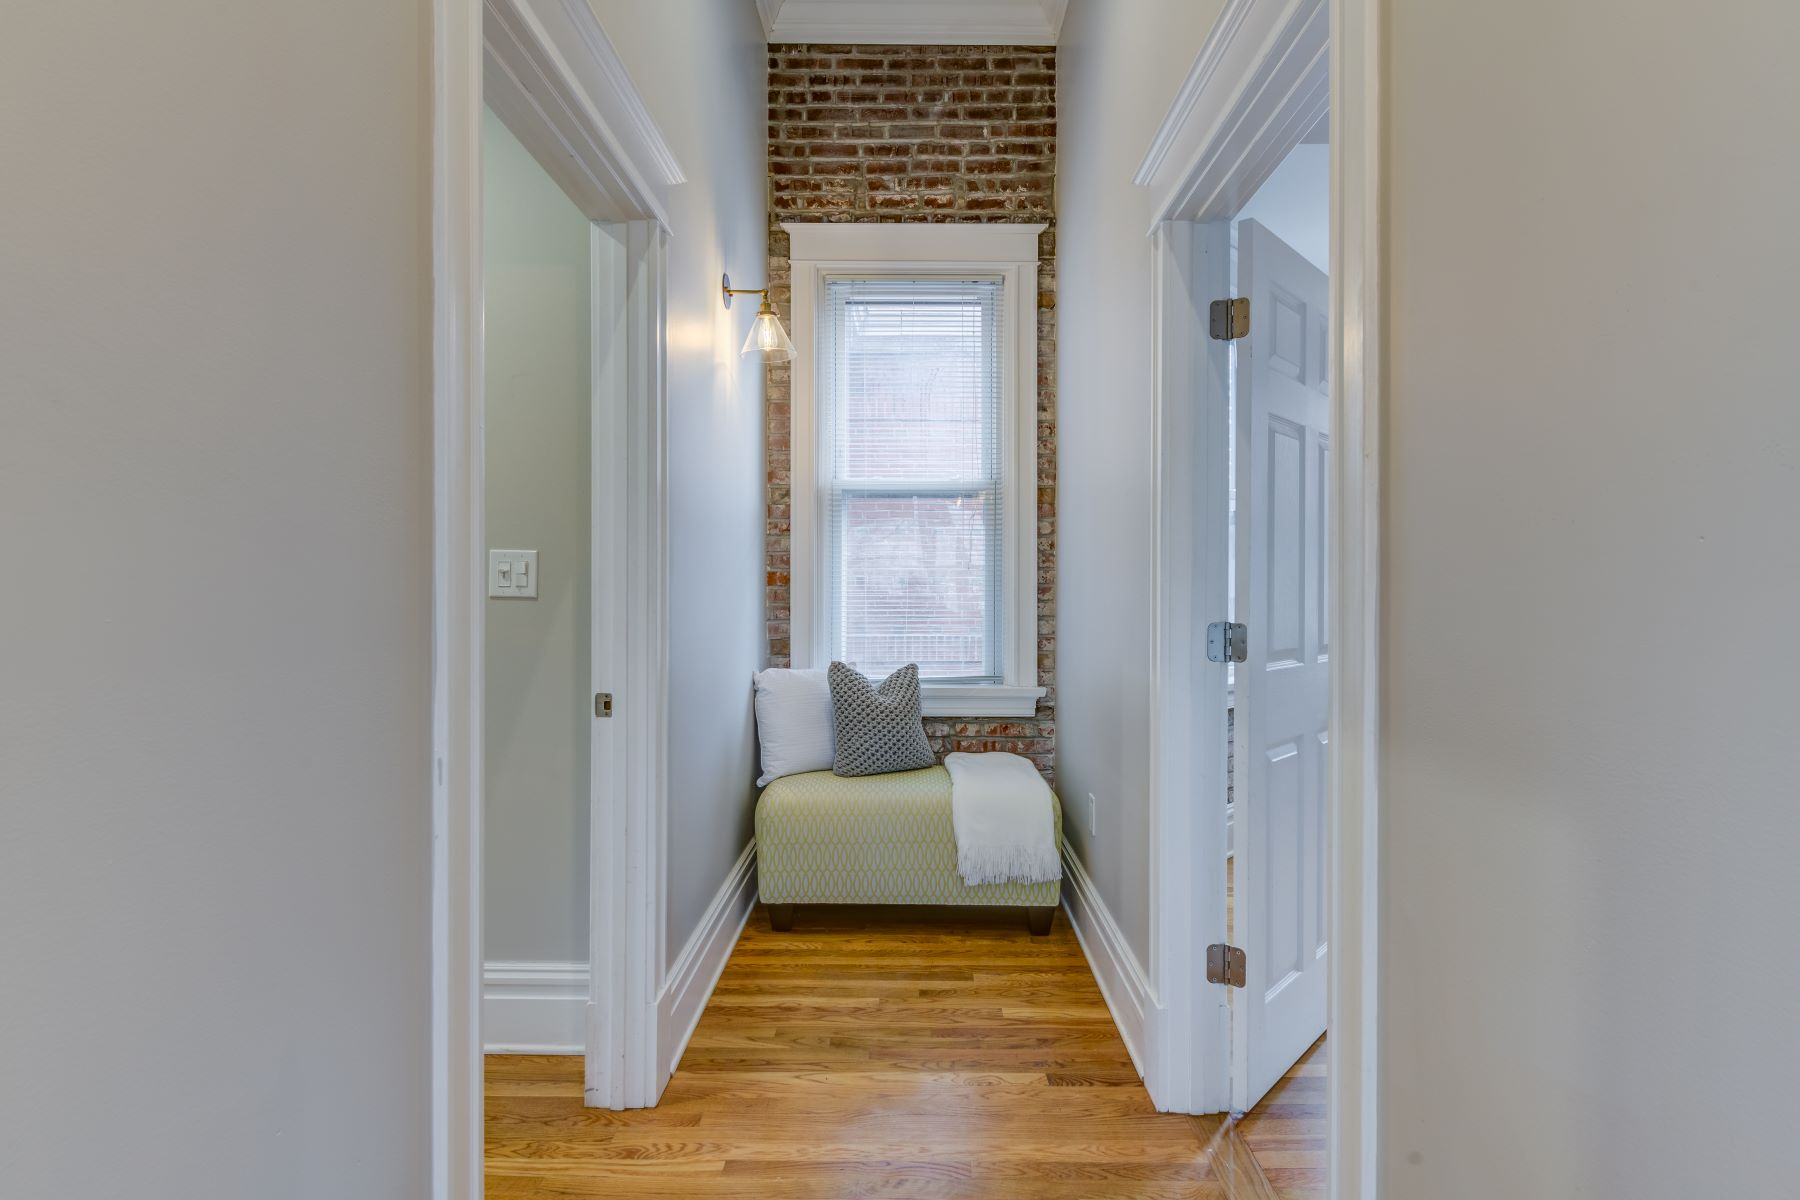 Additional photo for property listing at 380 North Taylor Avenue, St. Louis, MO 63108 380 North Taylor Avenue #3S St. Louis, Missouri 63108 United States